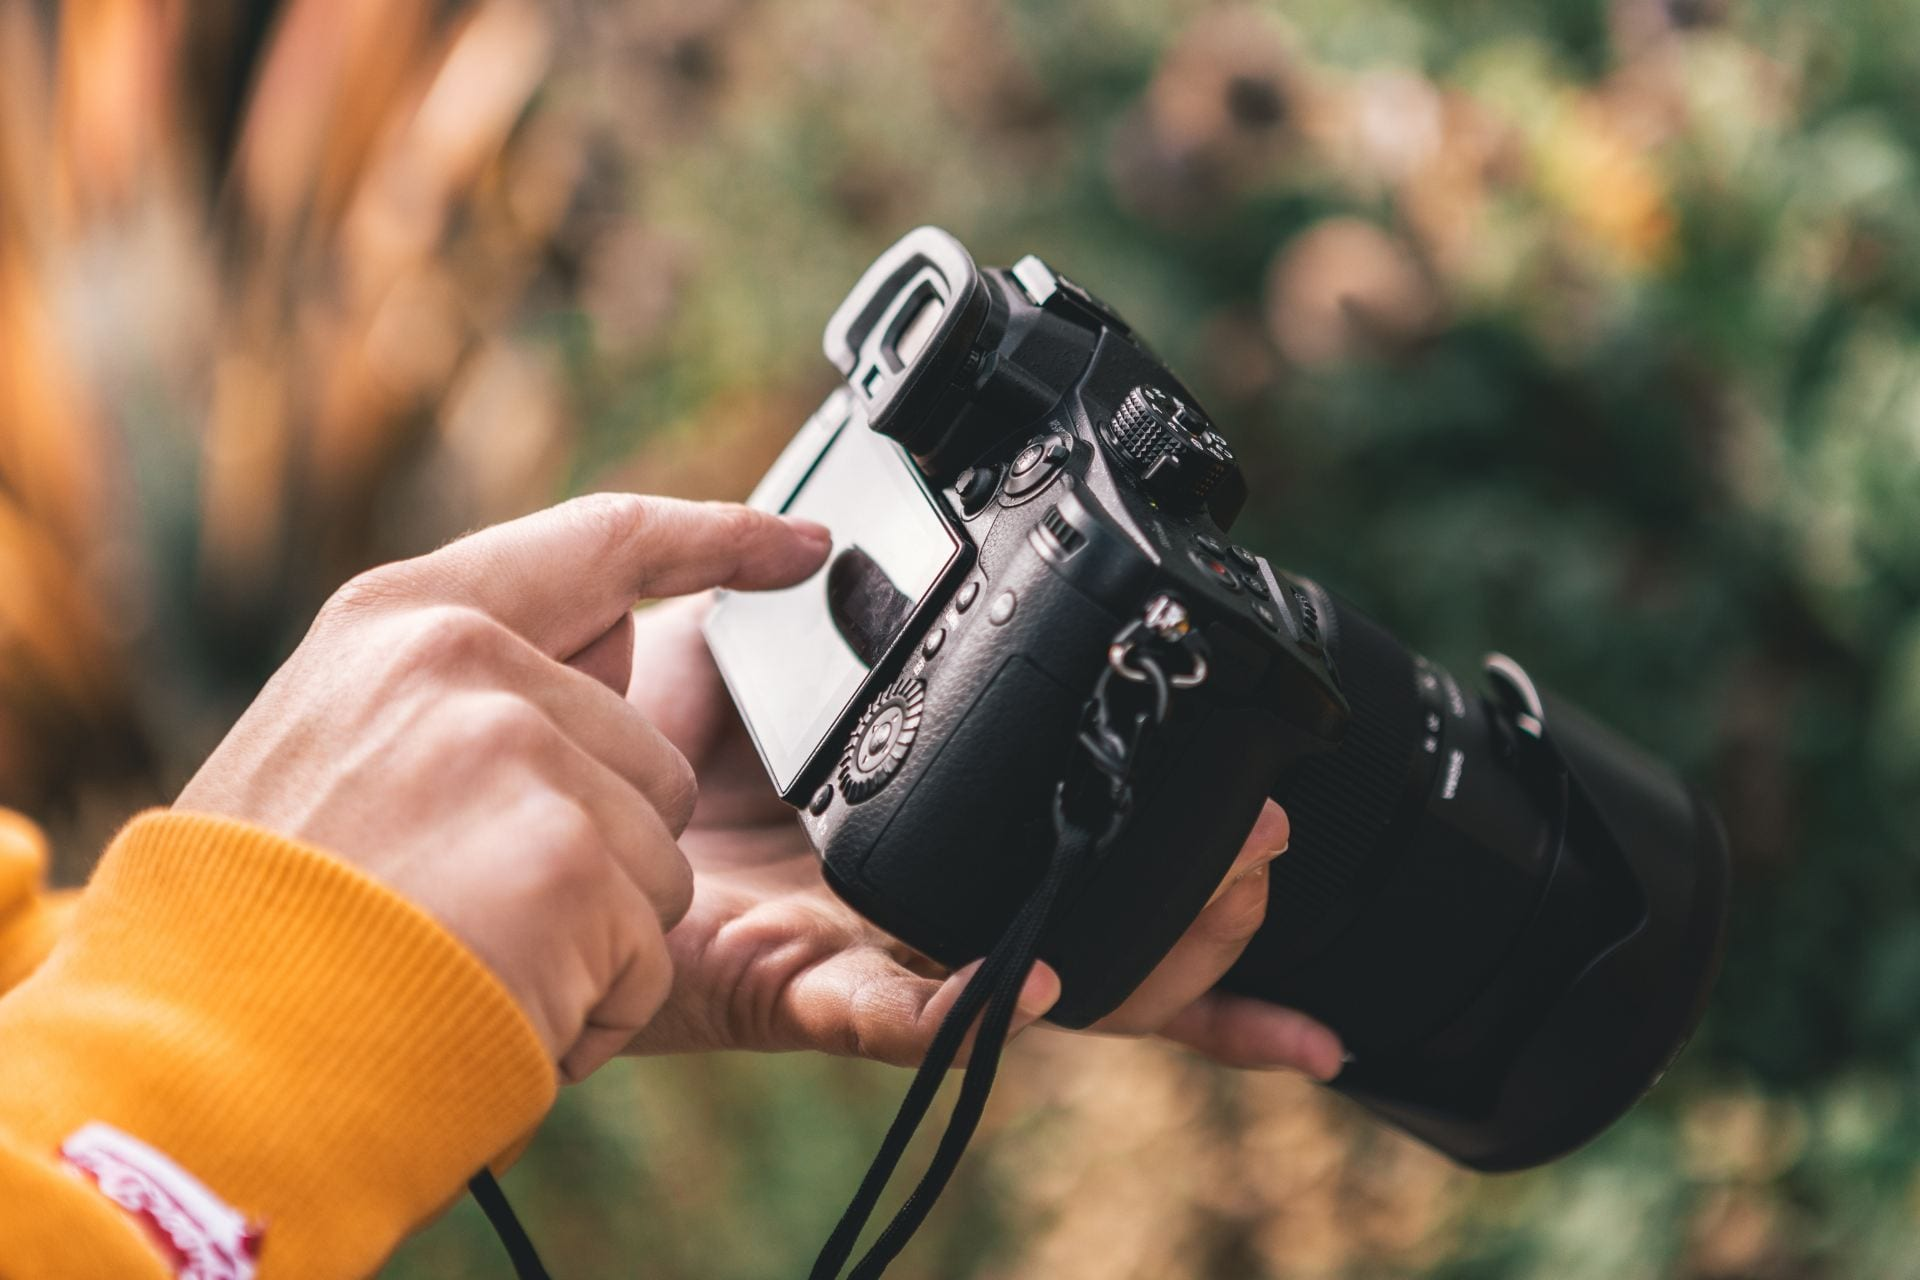 Do you share students' photos online? This post gives you some tips on sharing students' images and other identifying information. It includes a handy summary poster. The Edublogger